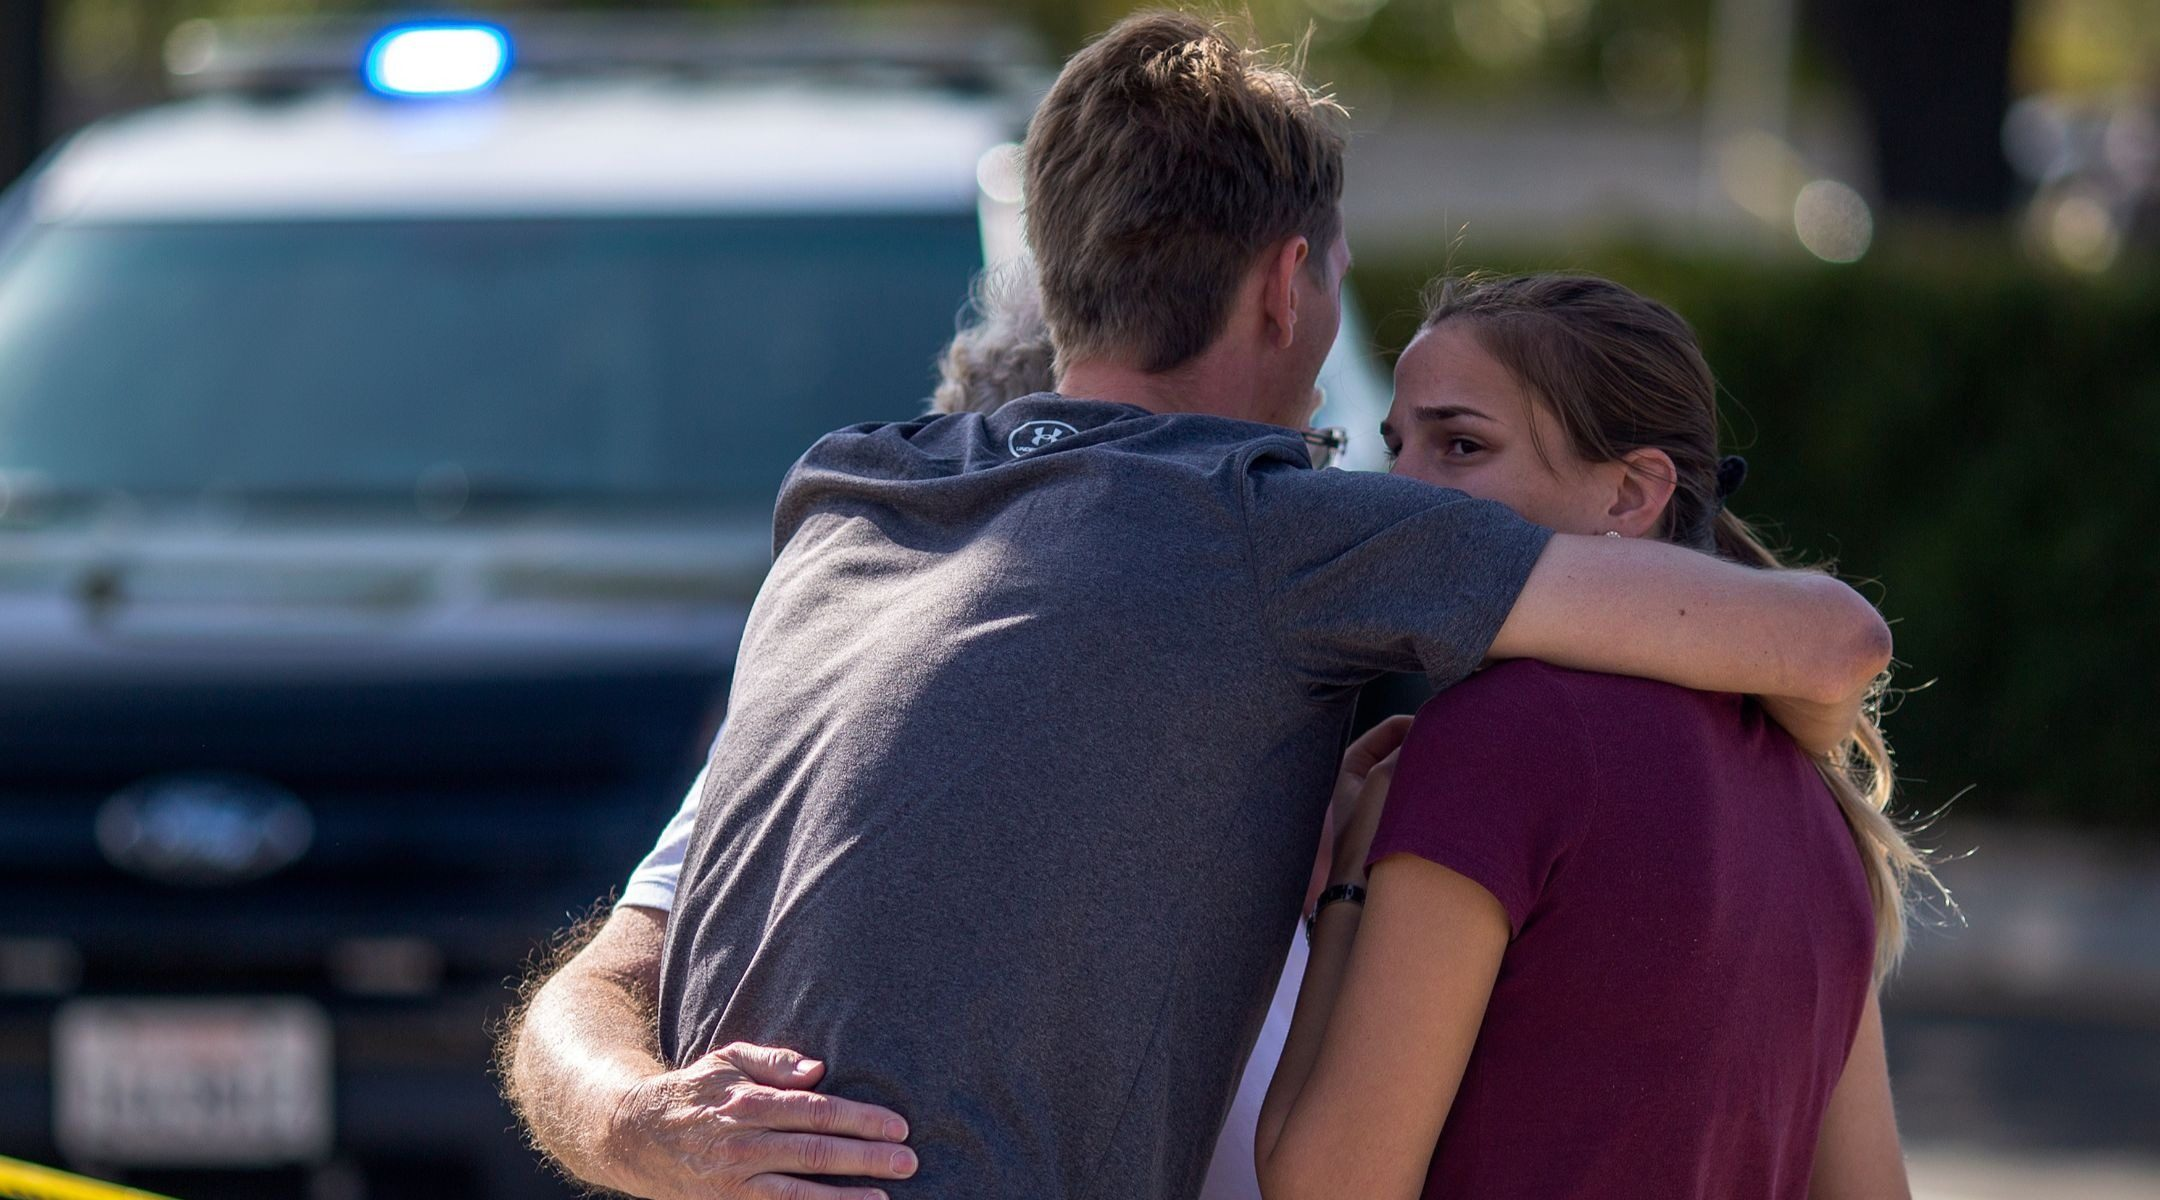 People embrace outside the Chabad of Poway, after a gunman opened fire during services on the last day of Passover, April 27, 2019, leaving one person dead and three others injured. (Photo/JTA-David McNew-Getty Images)